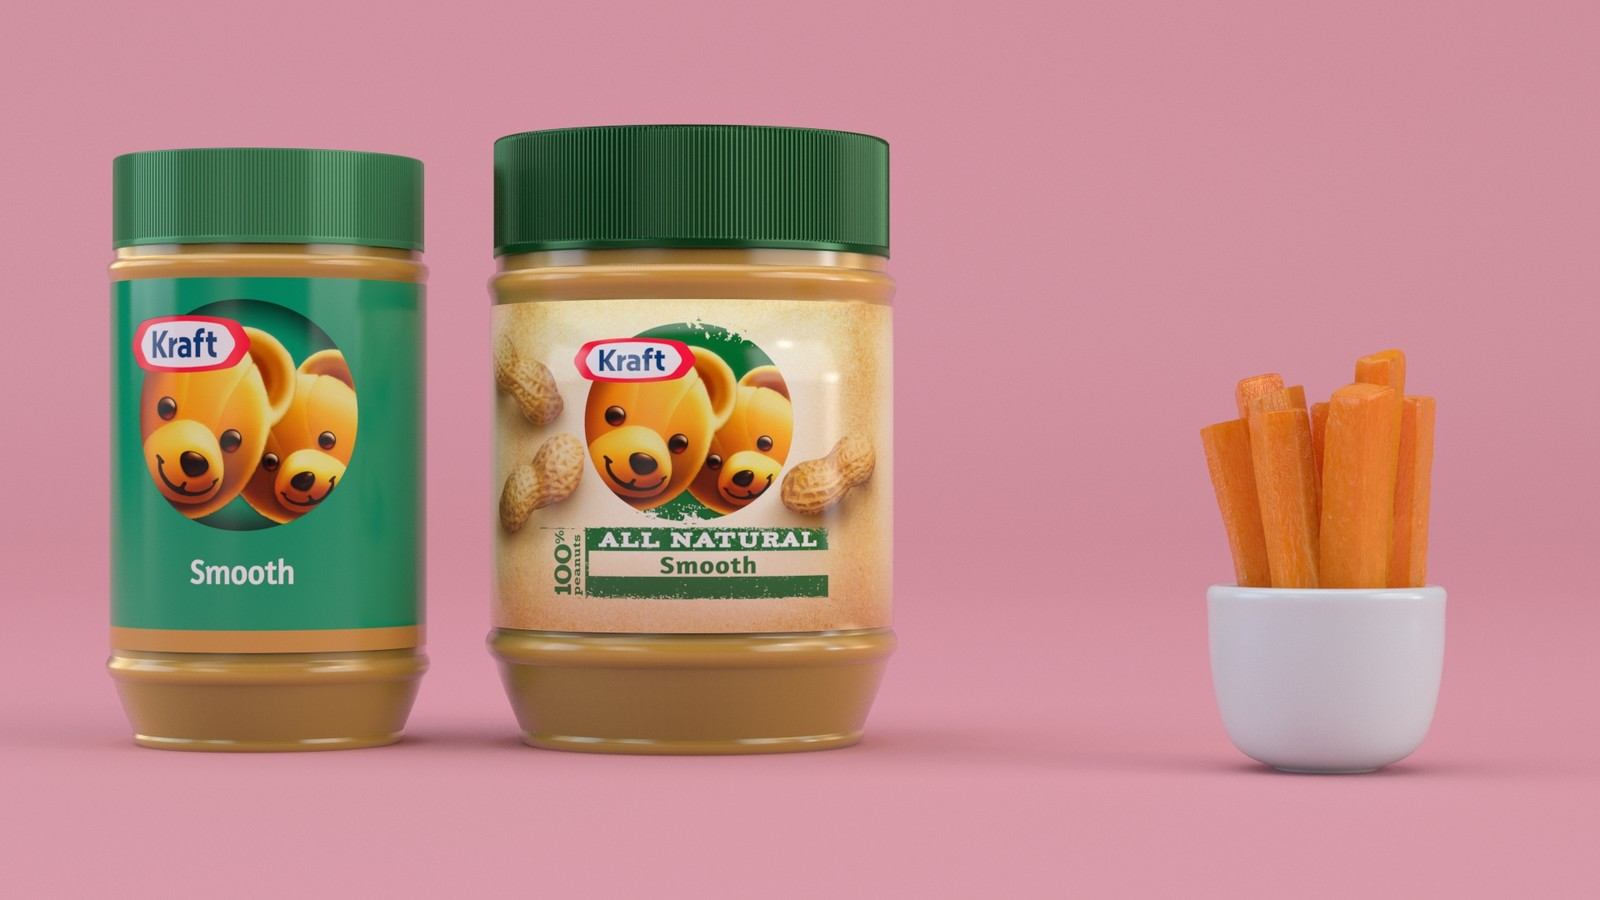 SnackBites Packshot - Tendril.ca